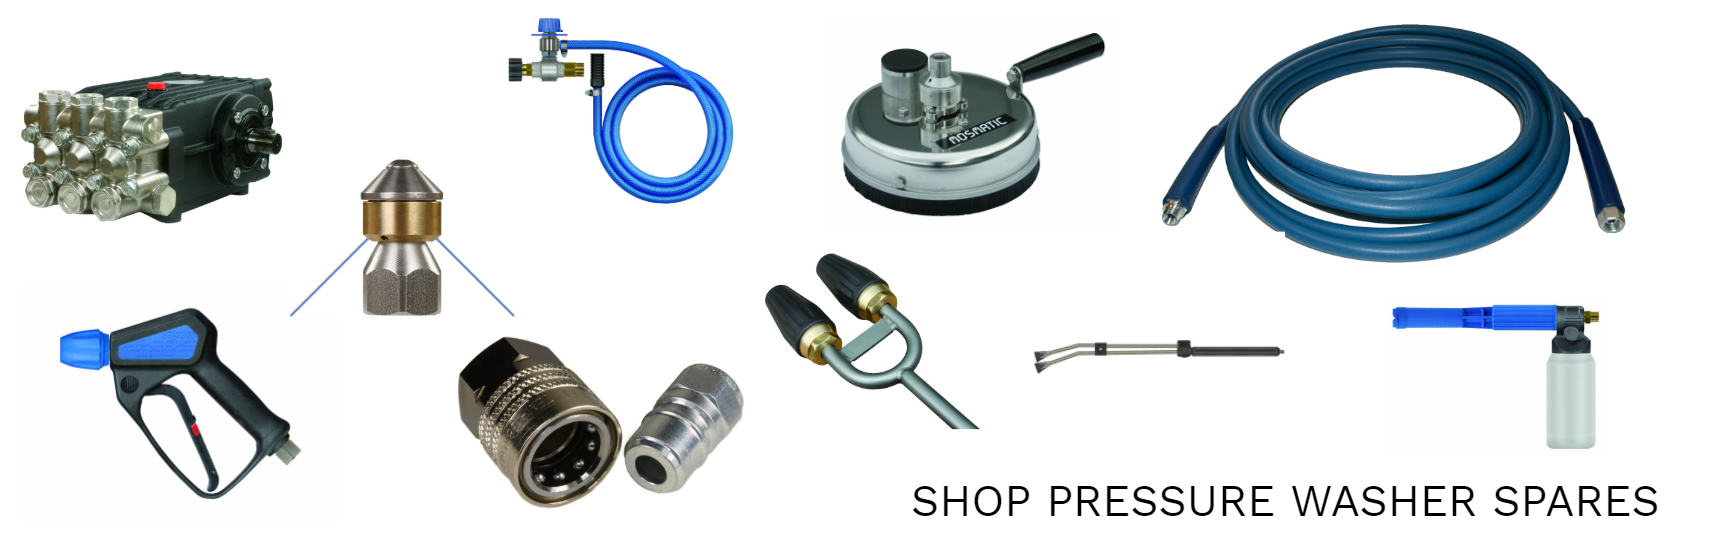 Pressure washer spares